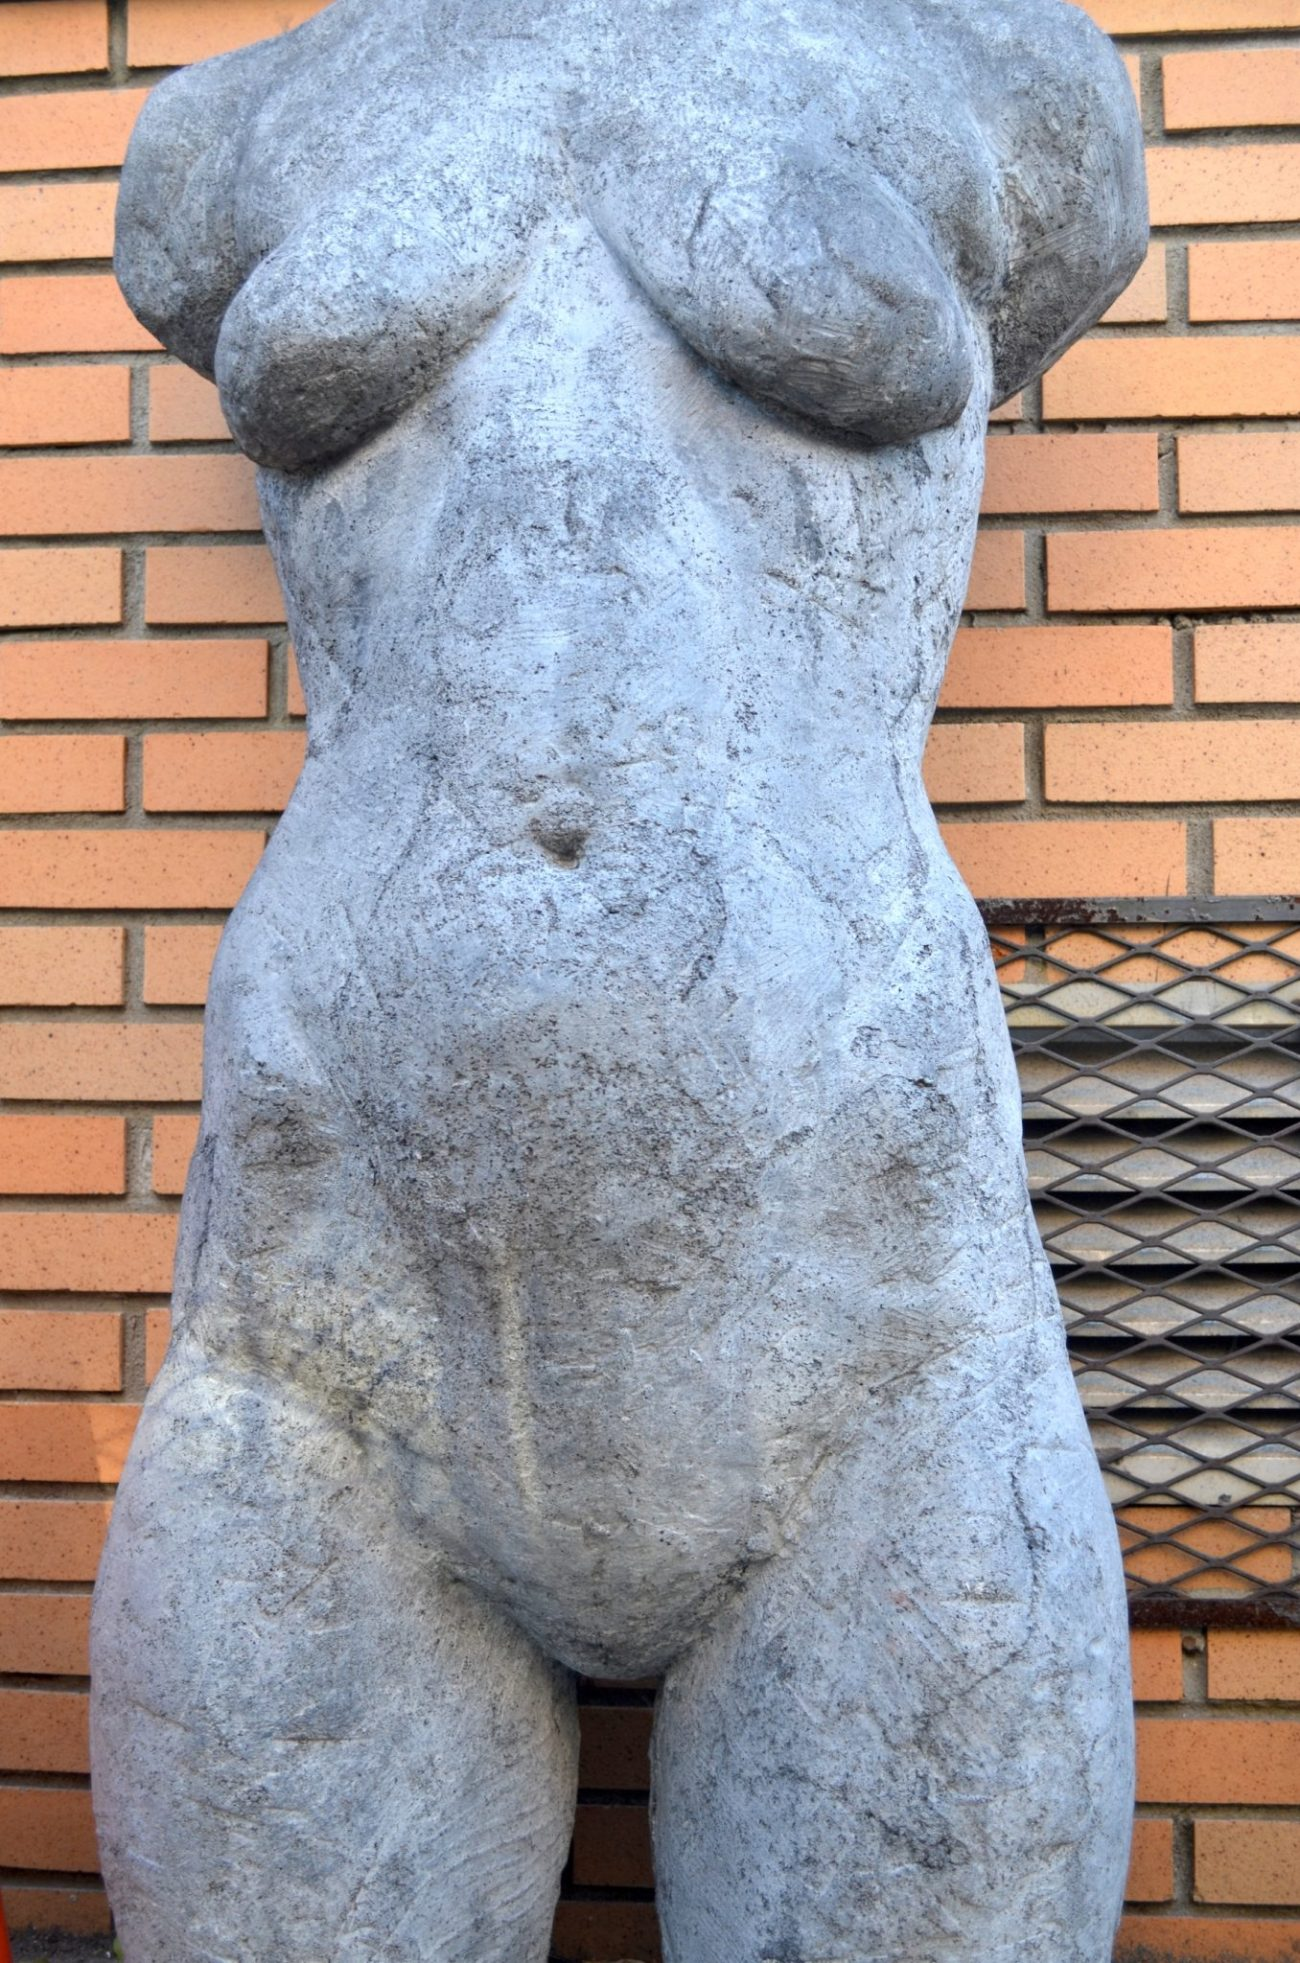 Nude Female Sculpture in Harlem